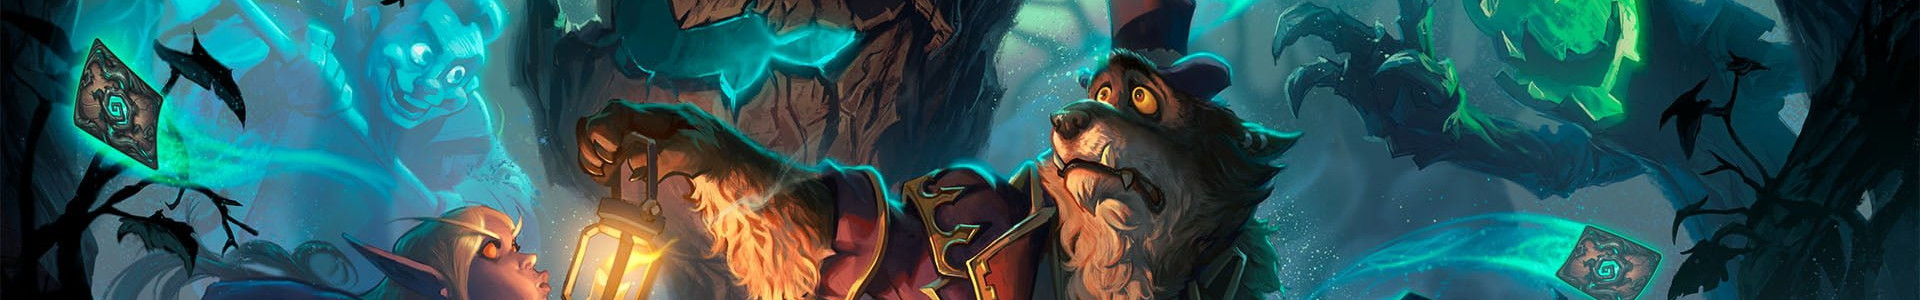 hearthstone-heroes-of-warcraft-banner